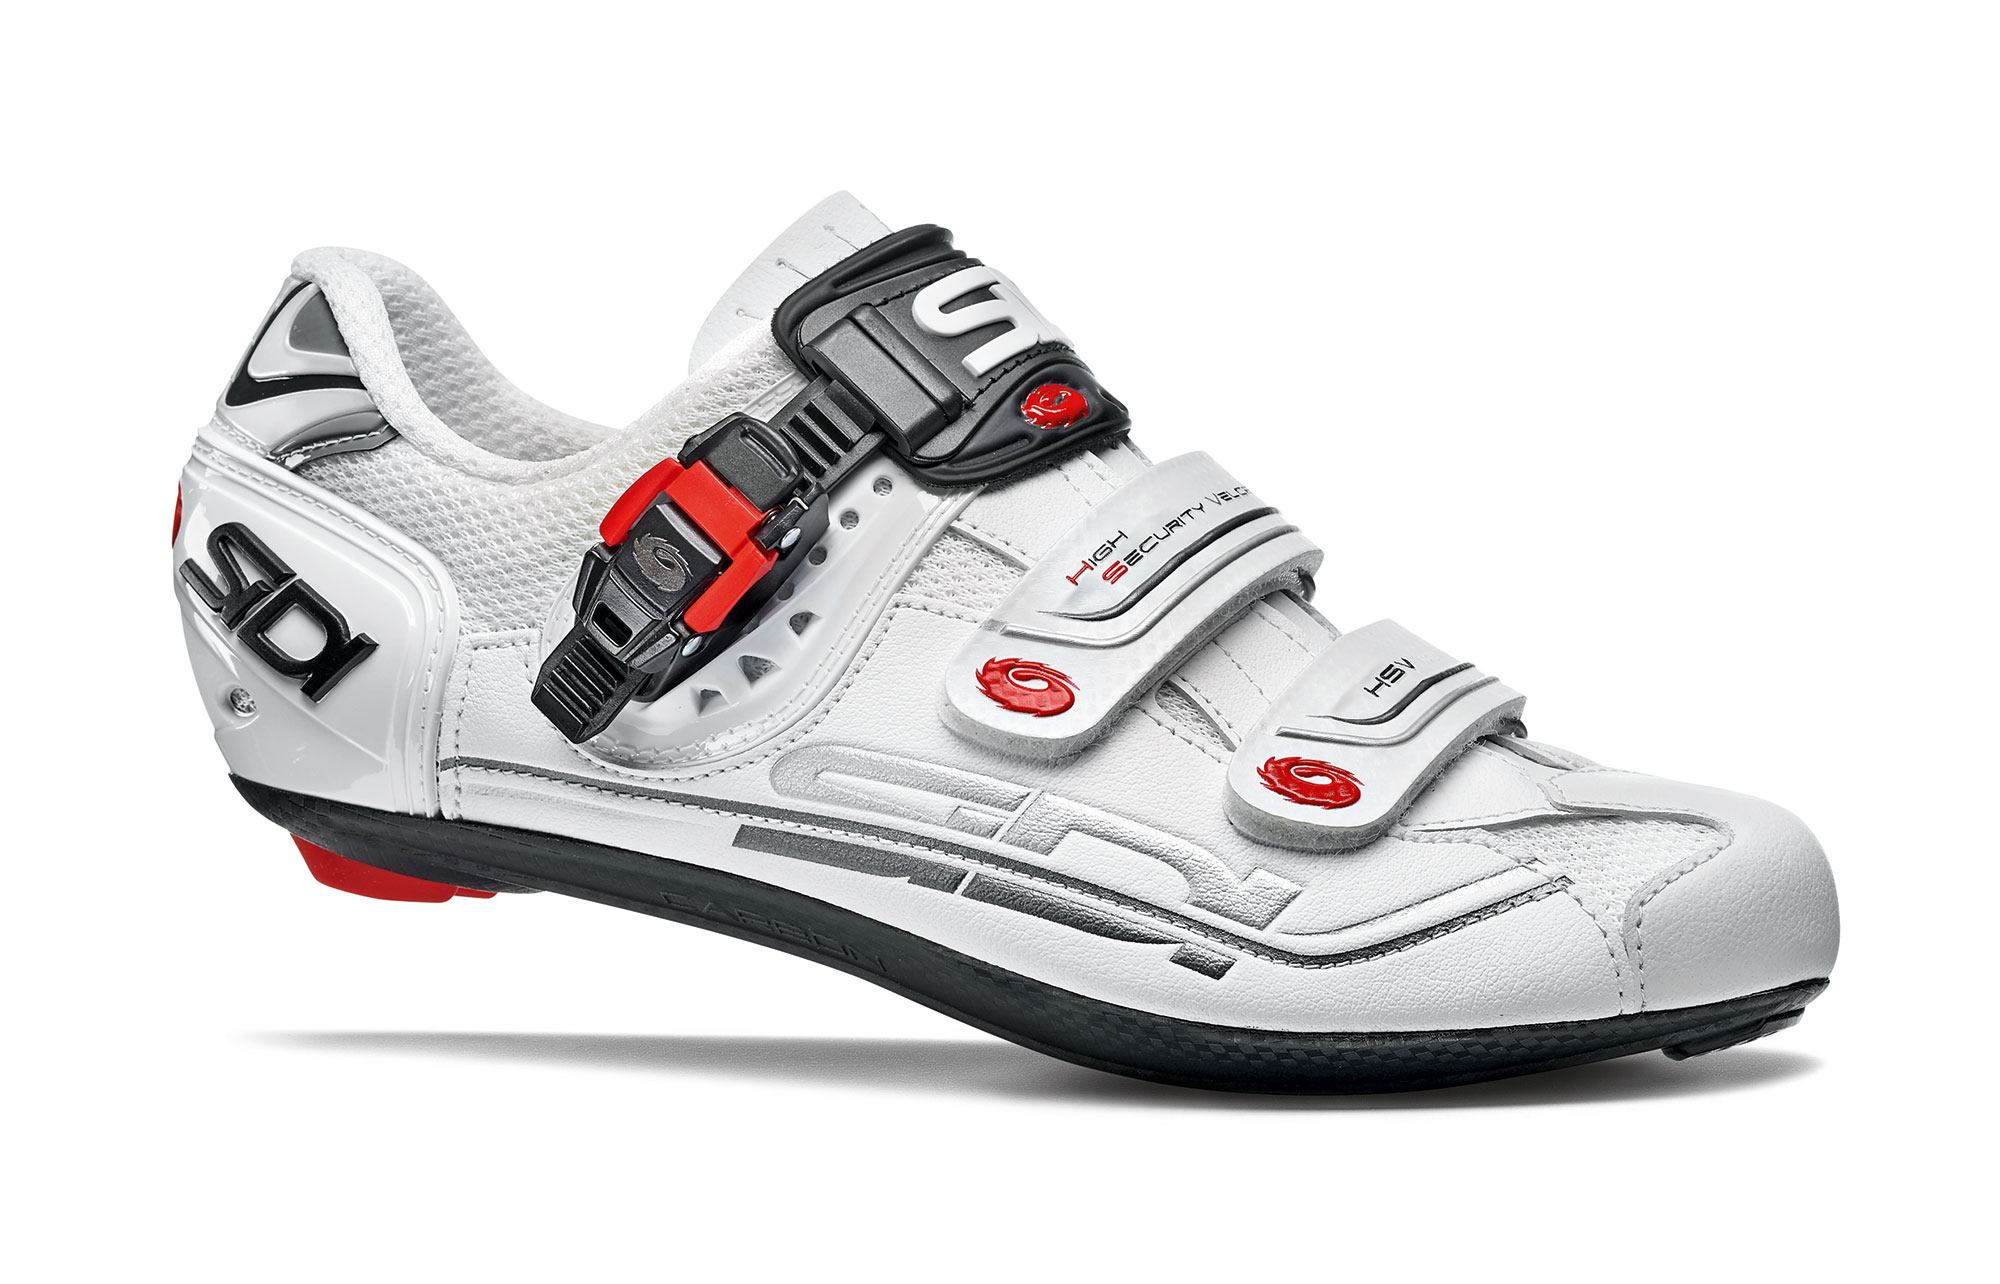 SIDI Shoes Genius 7 44.5 White Shadow Blk Liner Scape Cycling Man